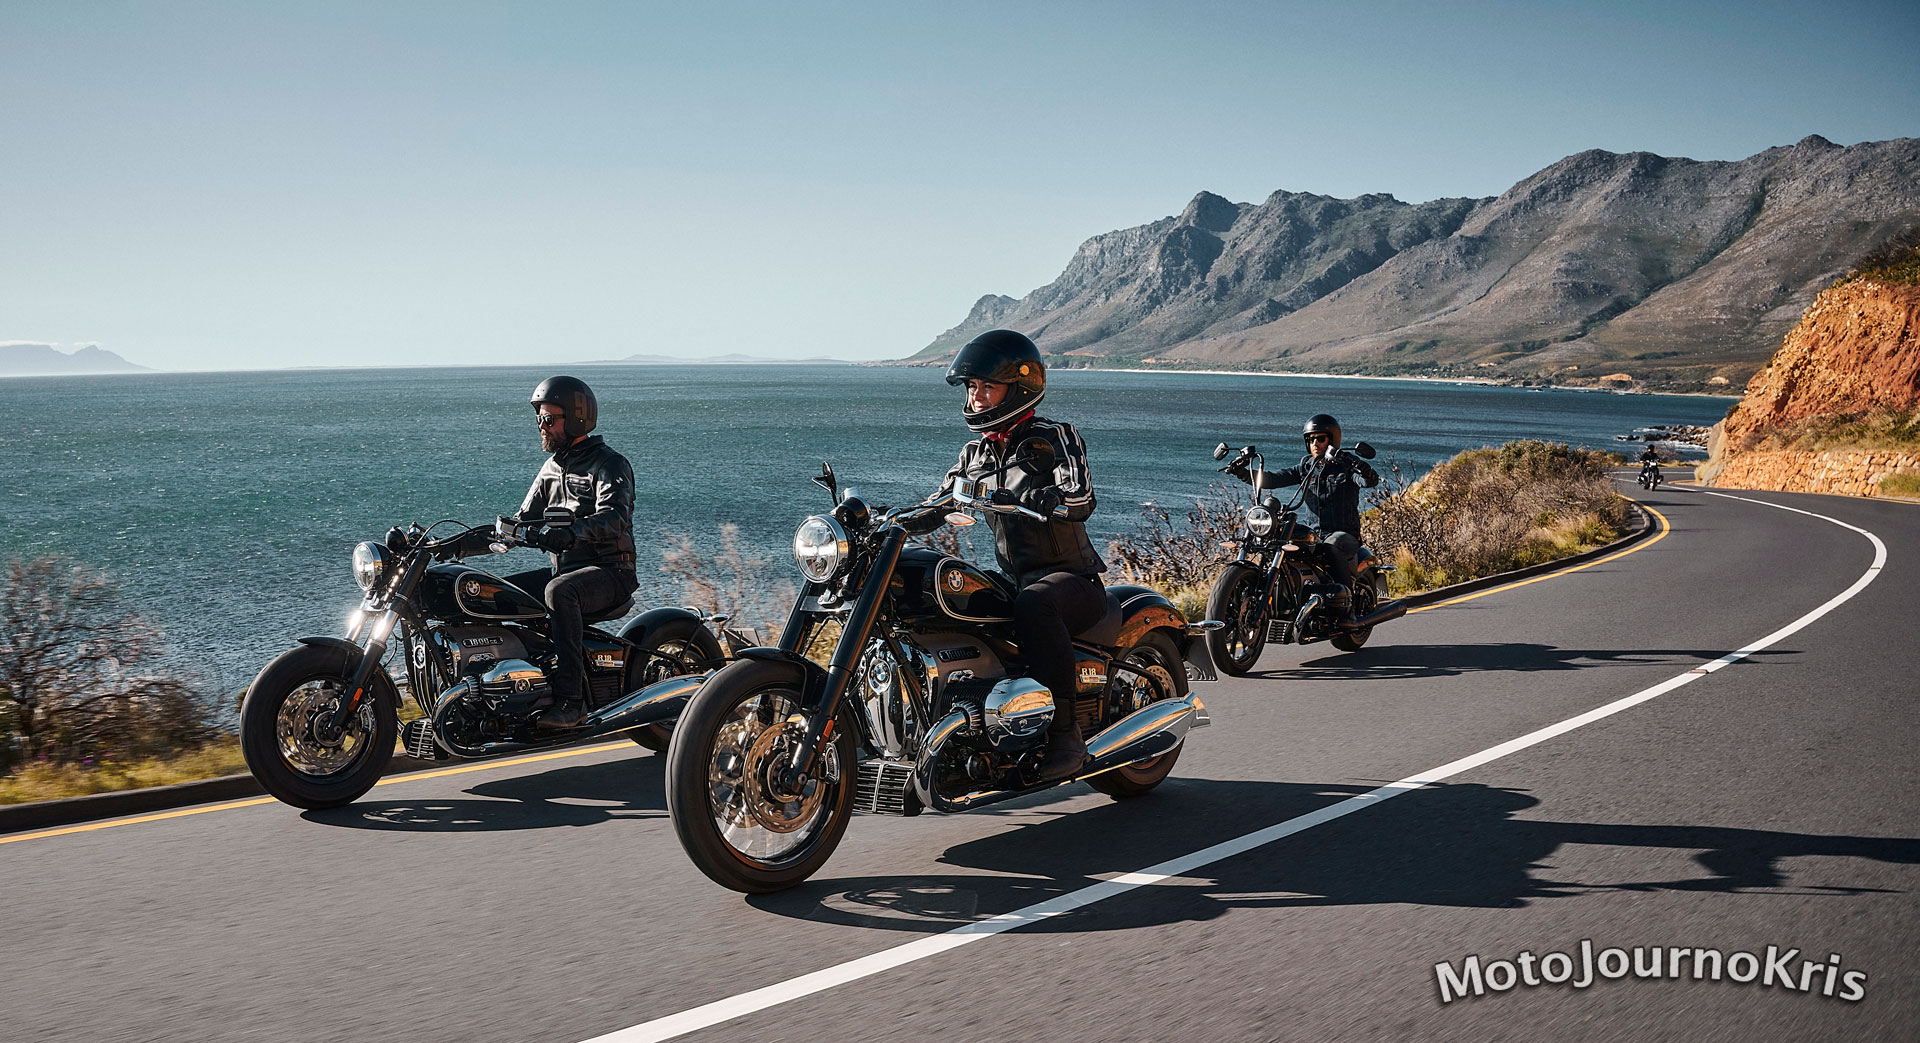 2020 BMW R 18 cruiser out on the open road by the coast